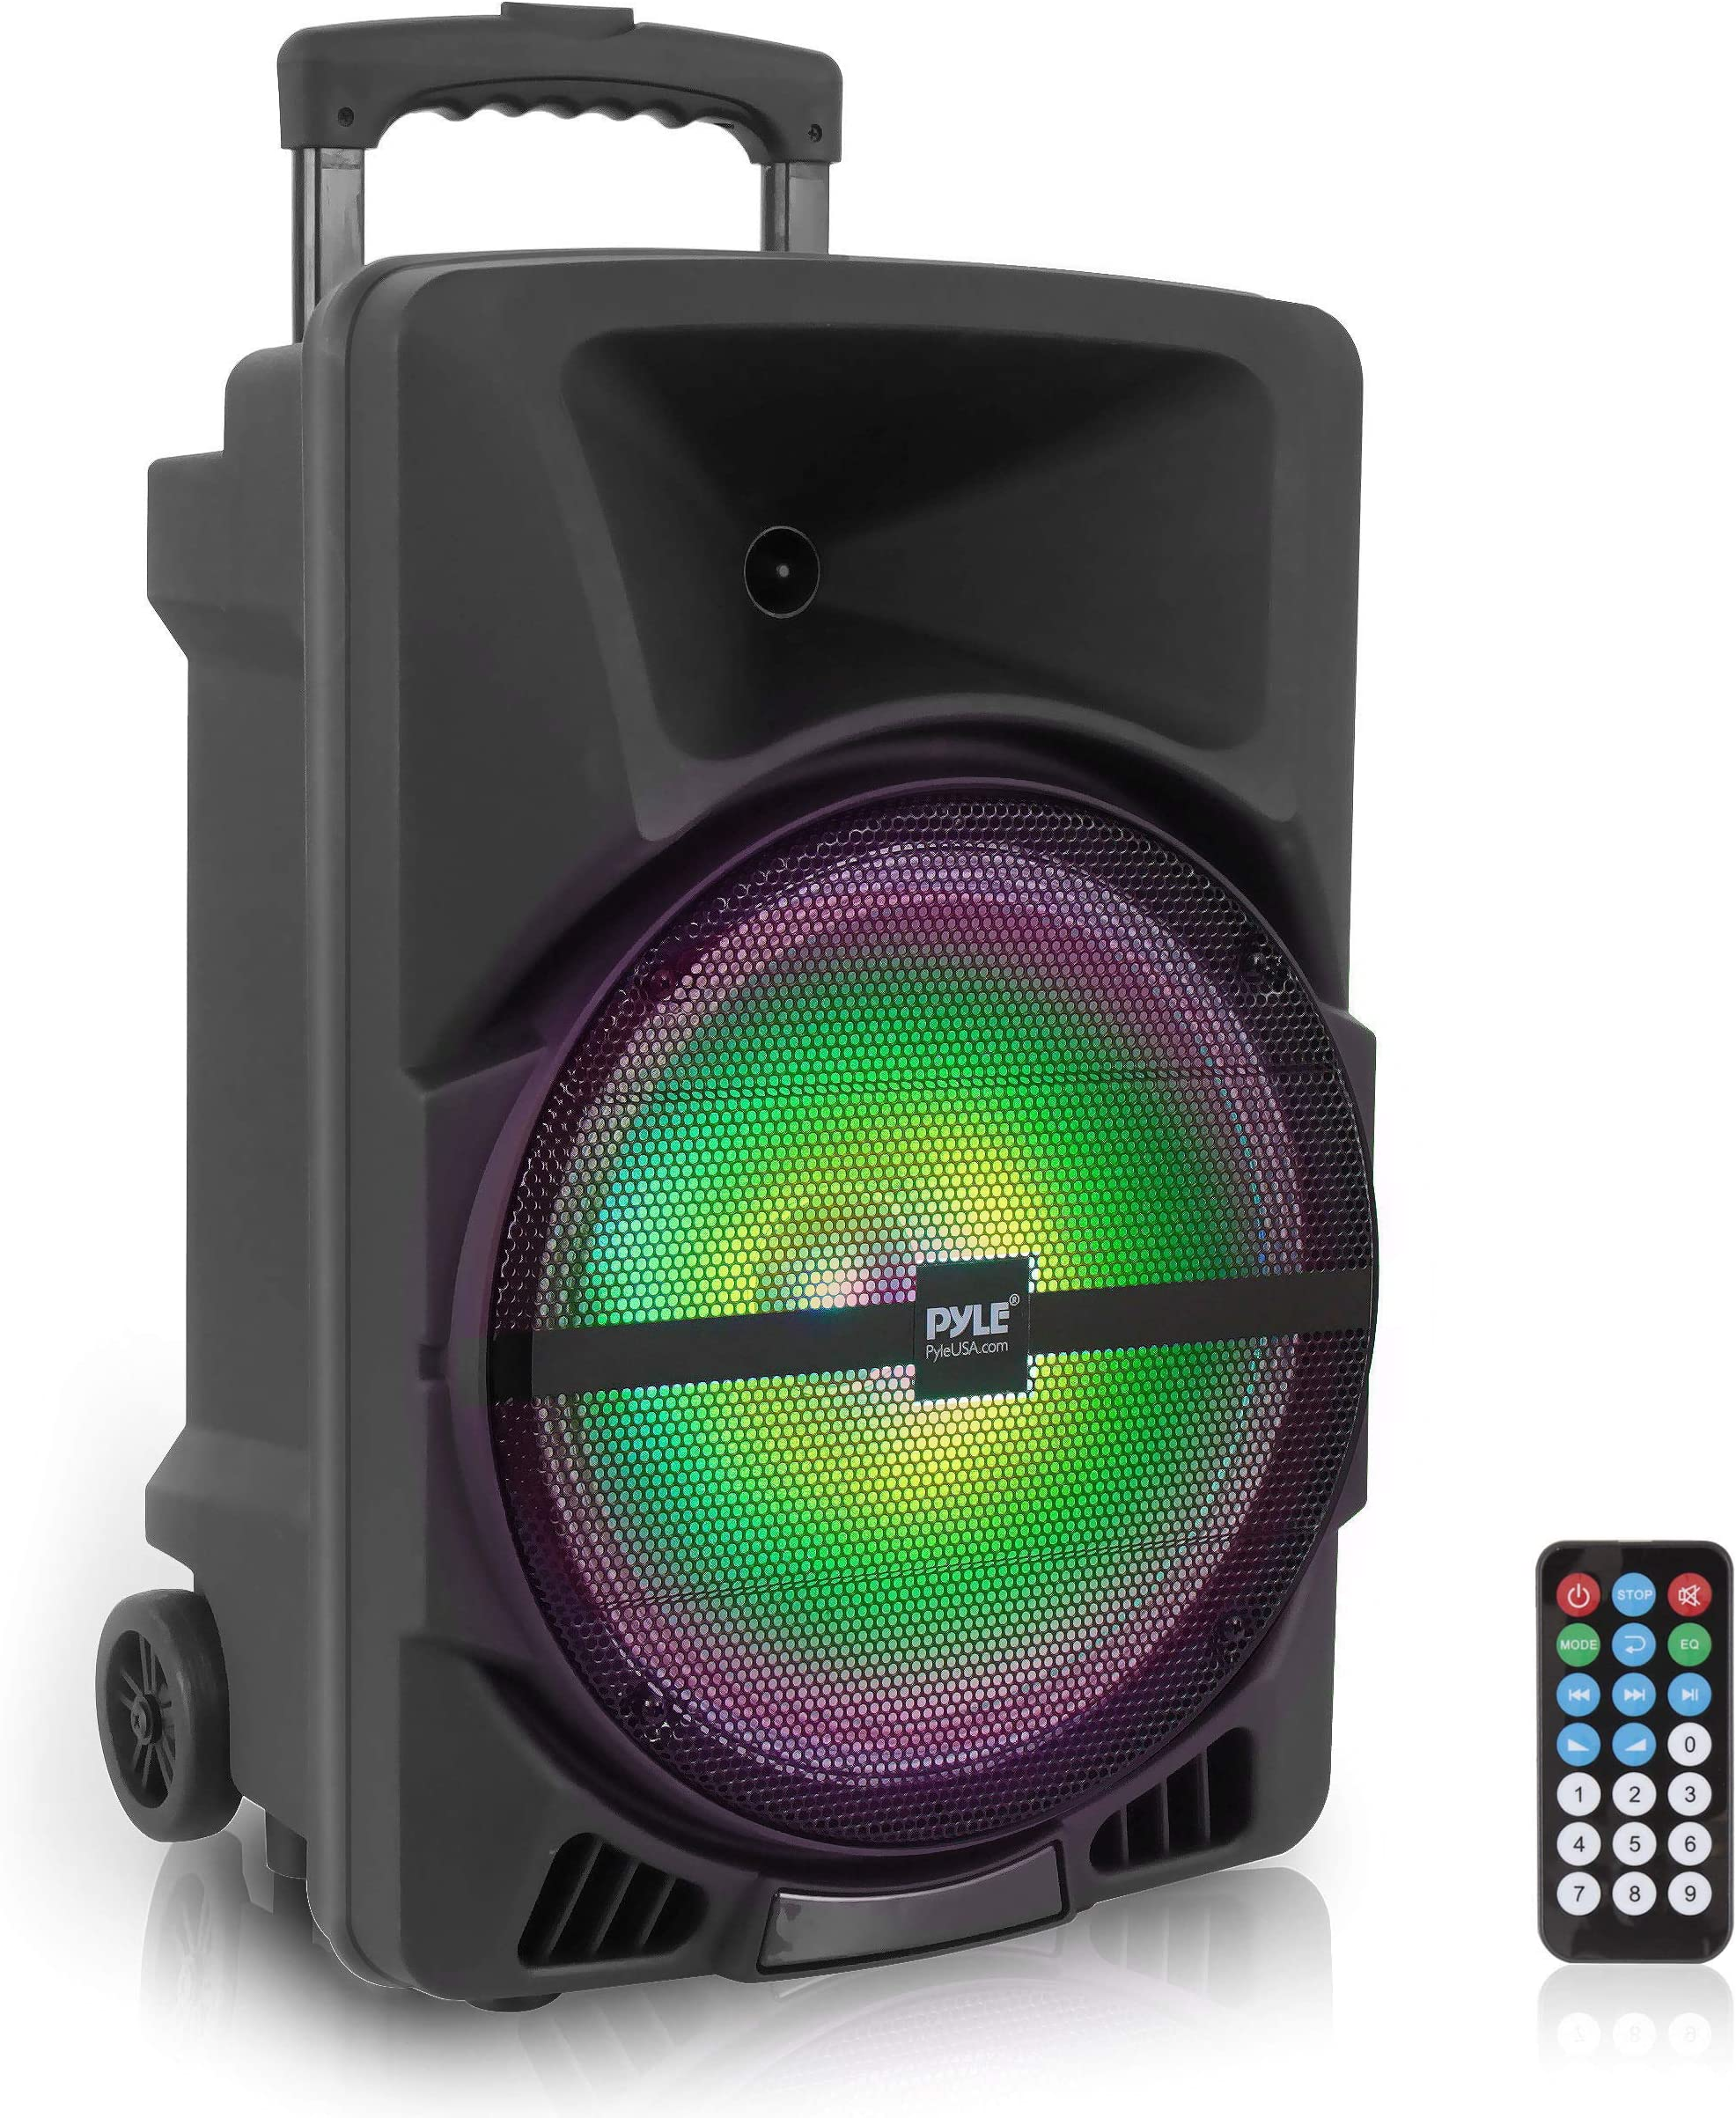 Wireless Portable PA Speaker System -1200W High Powered Bluetooth Compatible Indoor and Outdoor DJ Sound Stereo Loudspeaker wITH USB SD MP3 AUX 3.5mm Input, Flashing Party Light & FM Radio -PPHP1544B